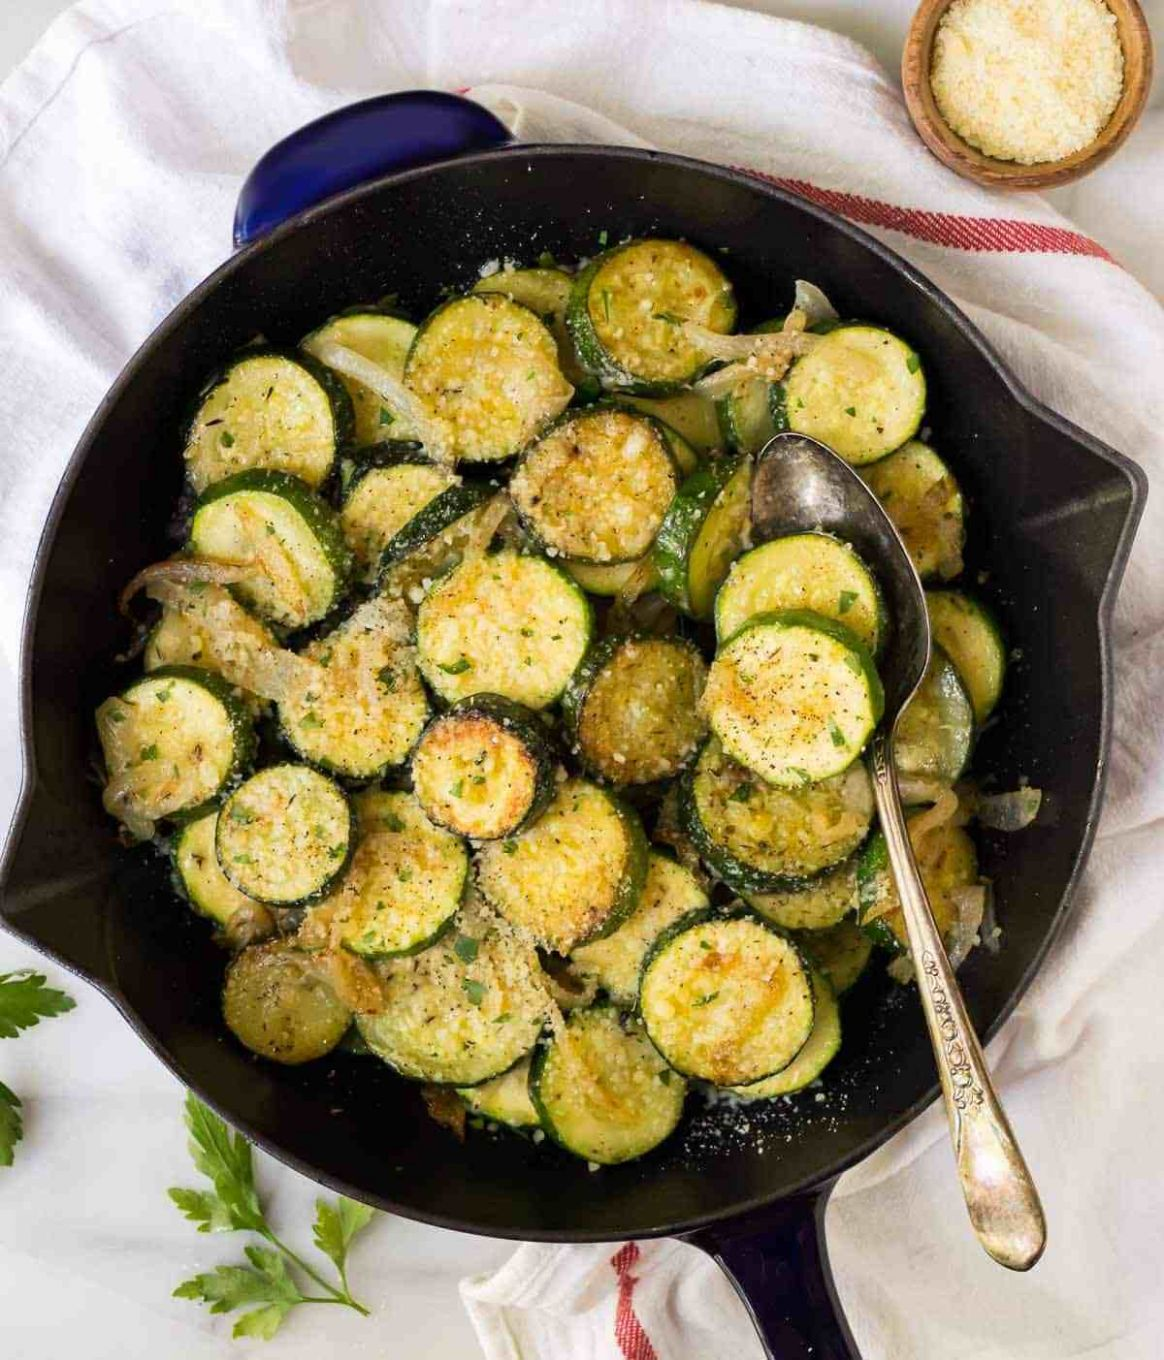 Easy Sautéed Zucchini with Parmesan - Vegetable Recipes Zucchini